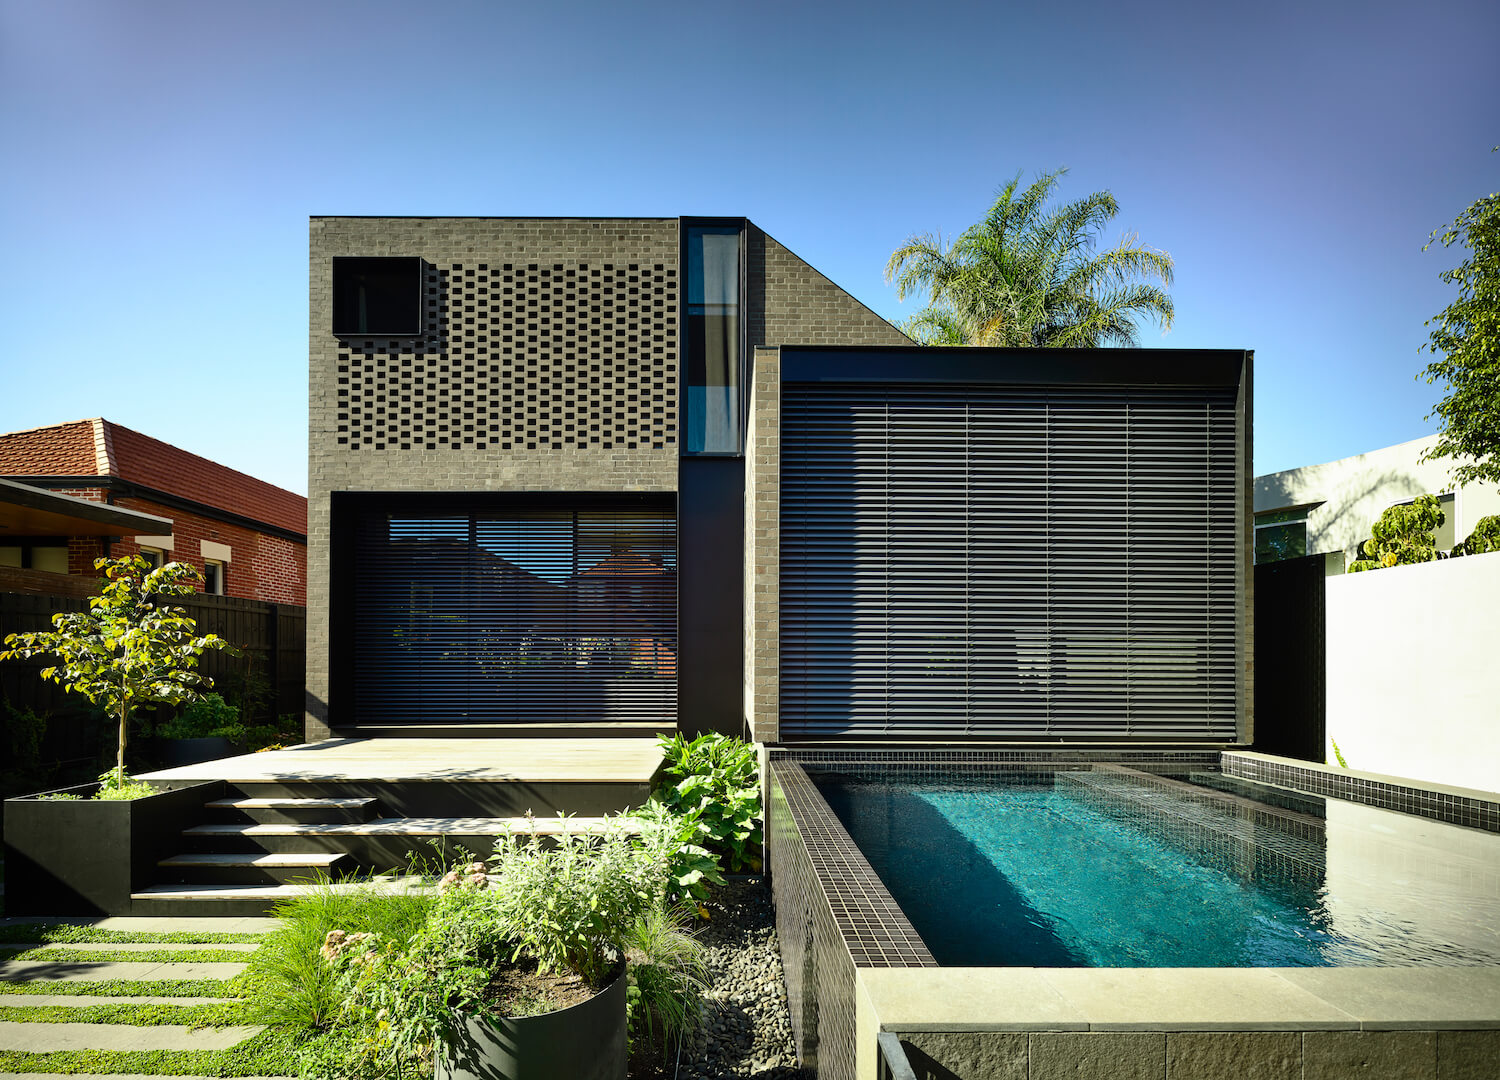 est living york street residence jackson clements burrows architects brickworks 18